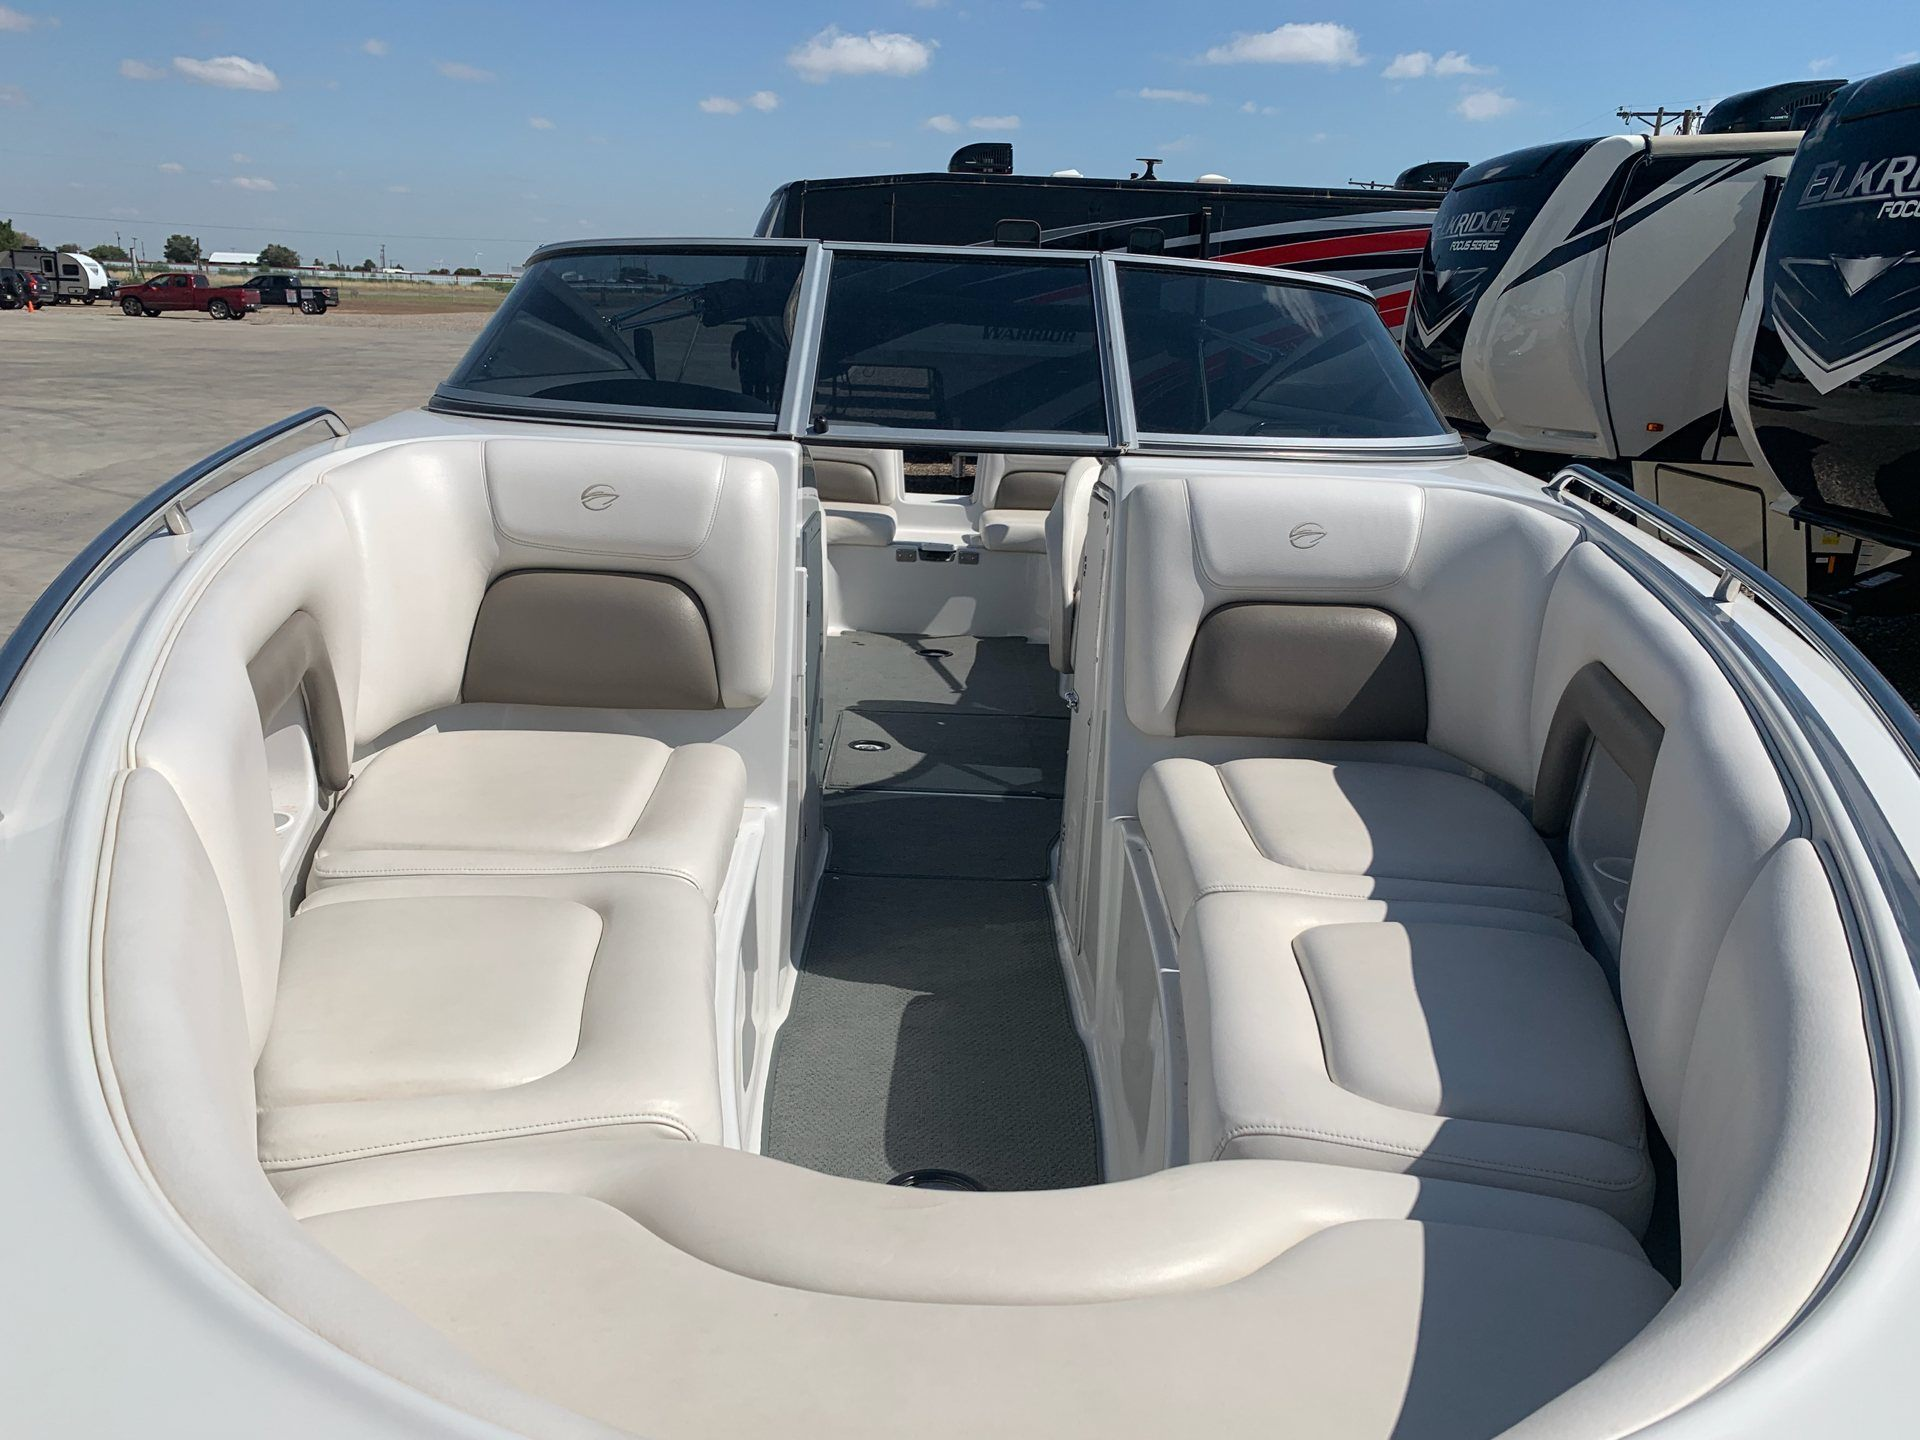 2004 Crownline 270BR in Wolfforth, Texas - Photo 9